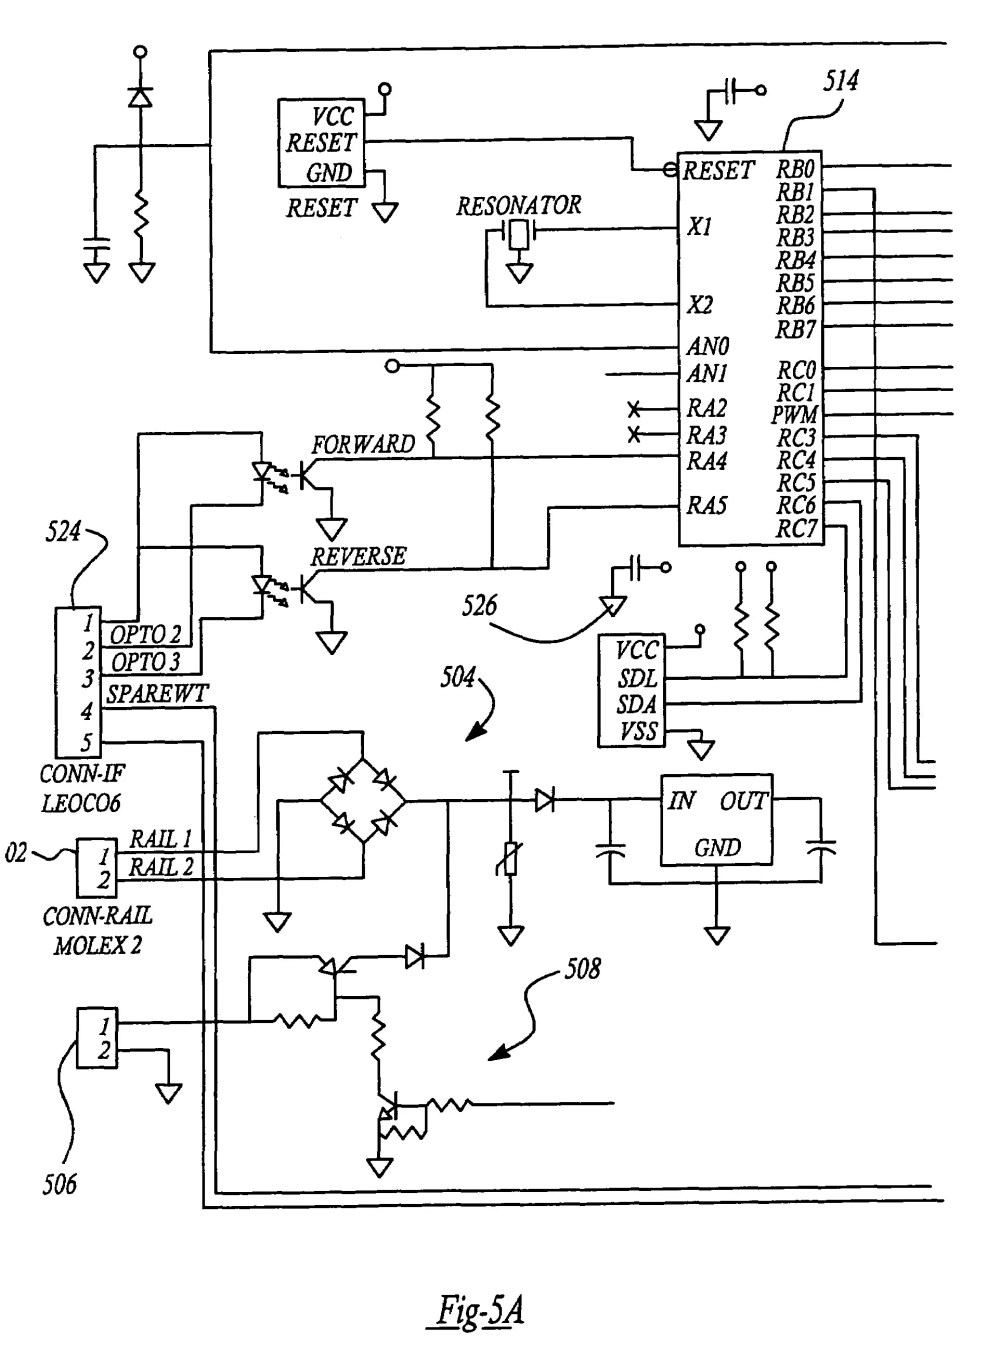 medium resolution of honda wave 100 engine diagram circuits dtmf encoding and decoding six channel infrared remote of honda